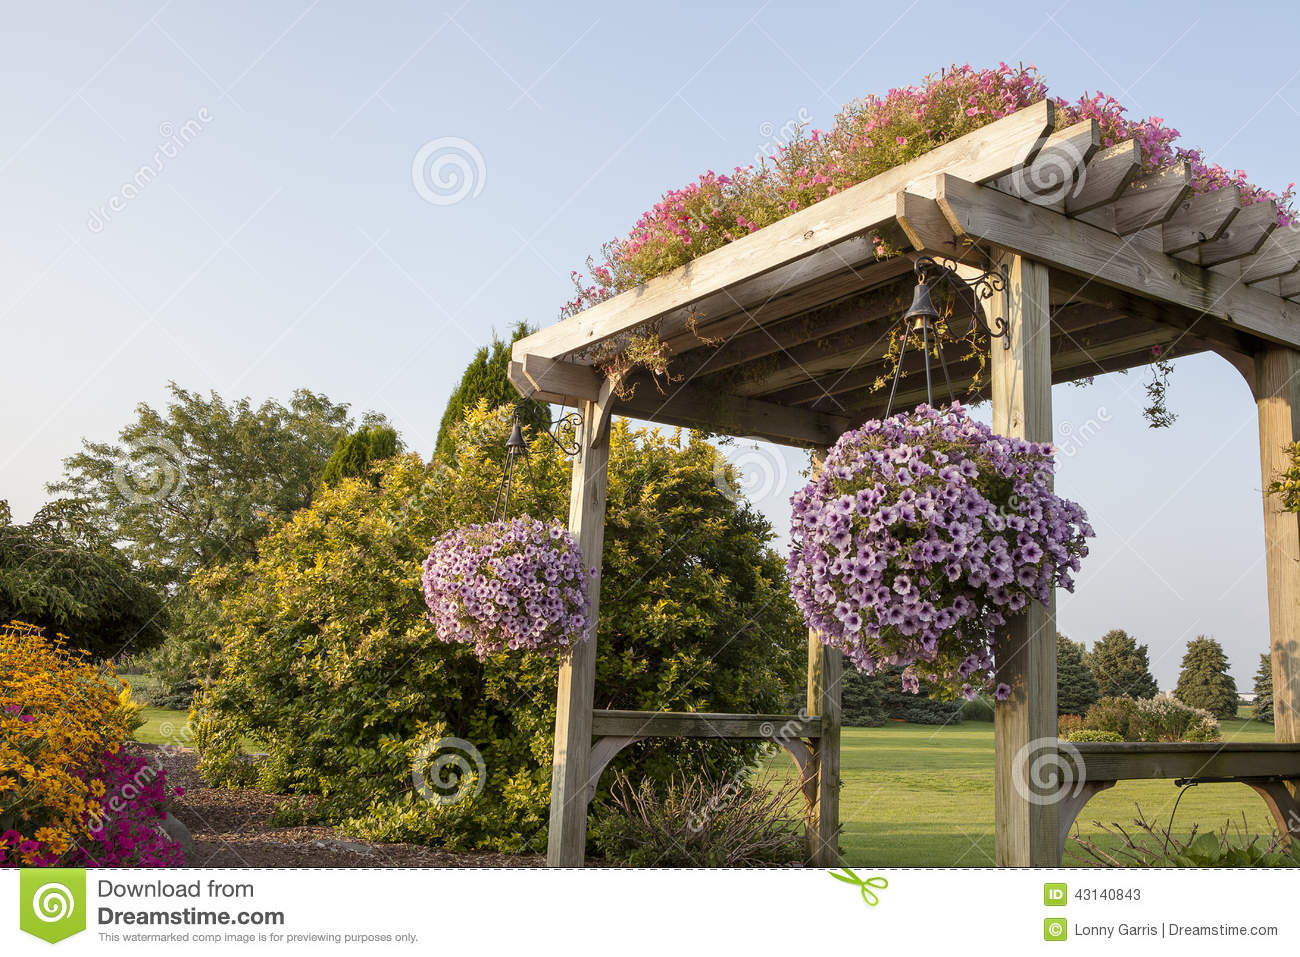 Garden Pergola With Walking Path Stock Image - Image: 43140843